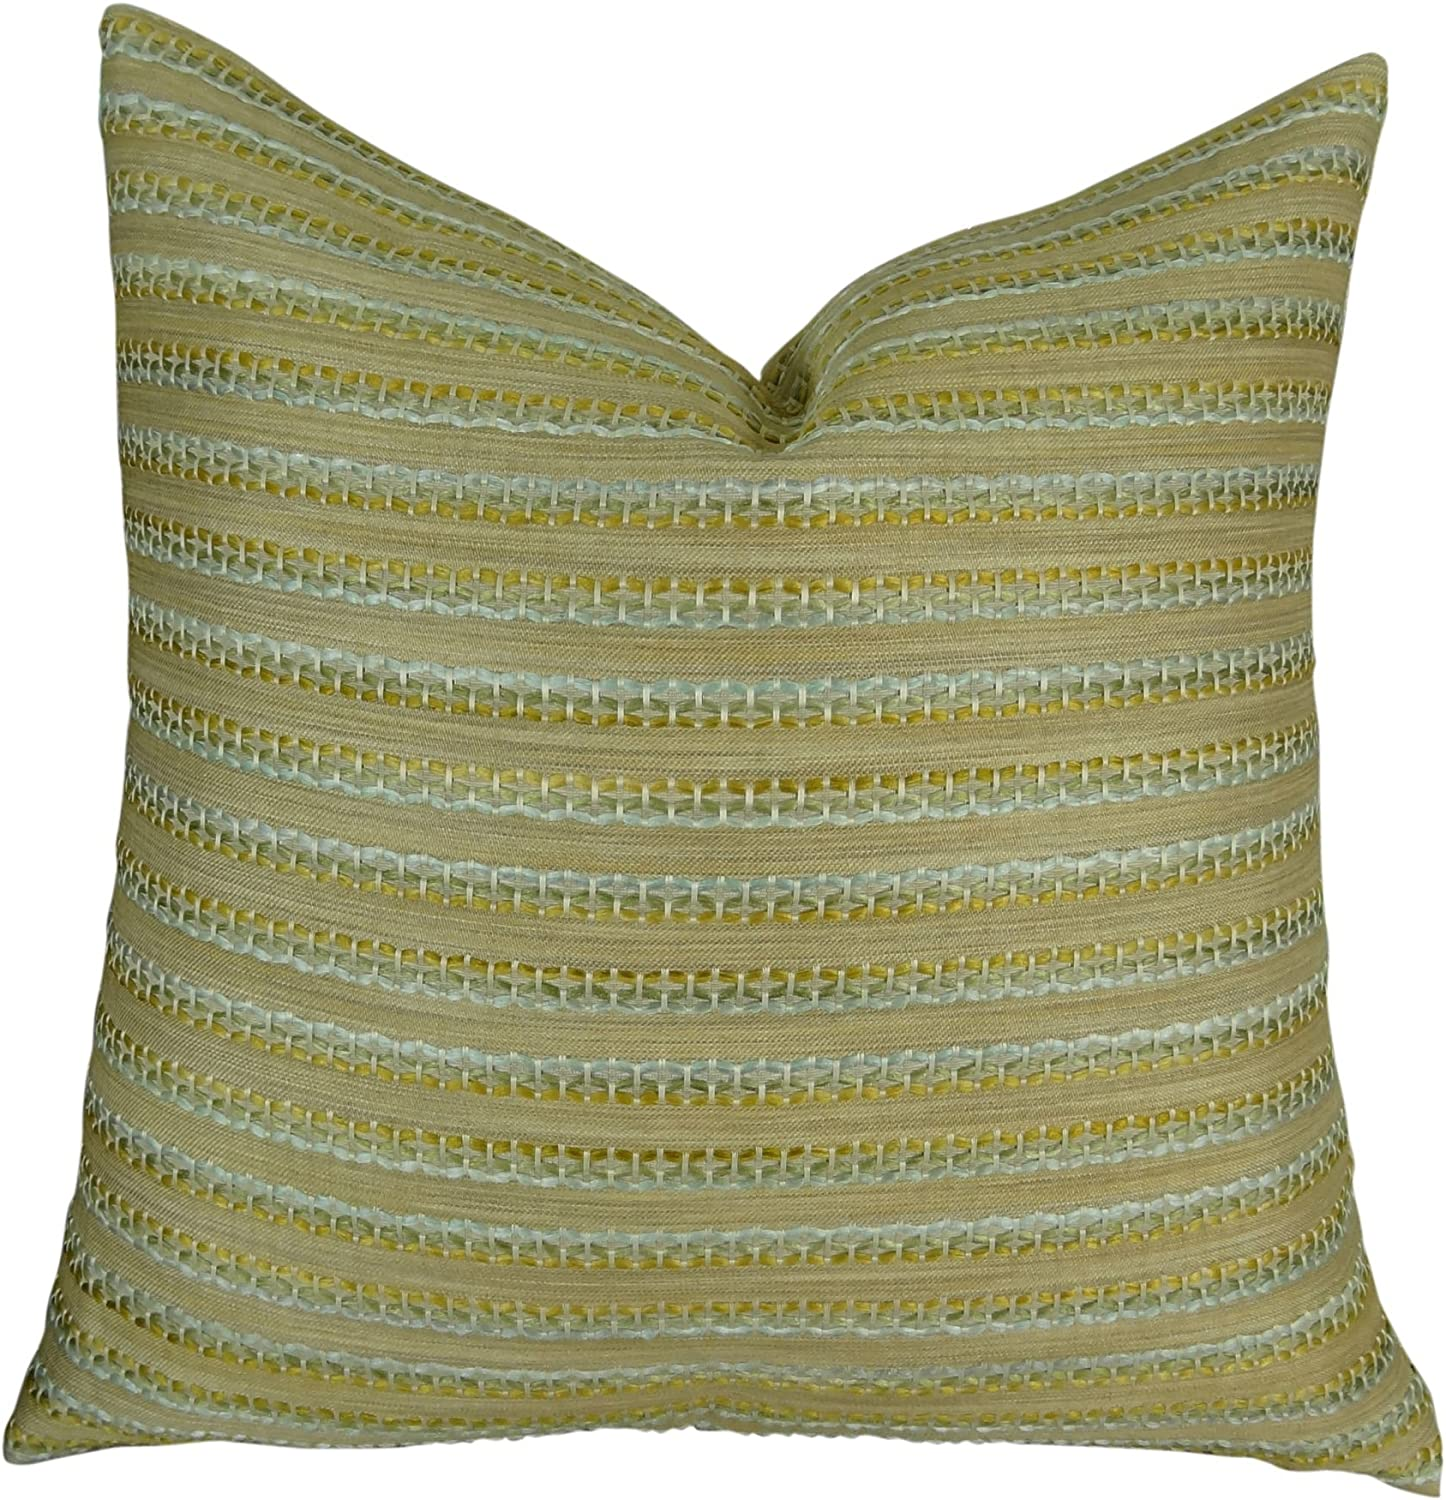 Thomas Collection Handmade in USA Luxury Accent Pillow for Couch Sofa Bed, Made in USA Pillow Insert & Cover, Taupe blueee Stripe Pillow  11320